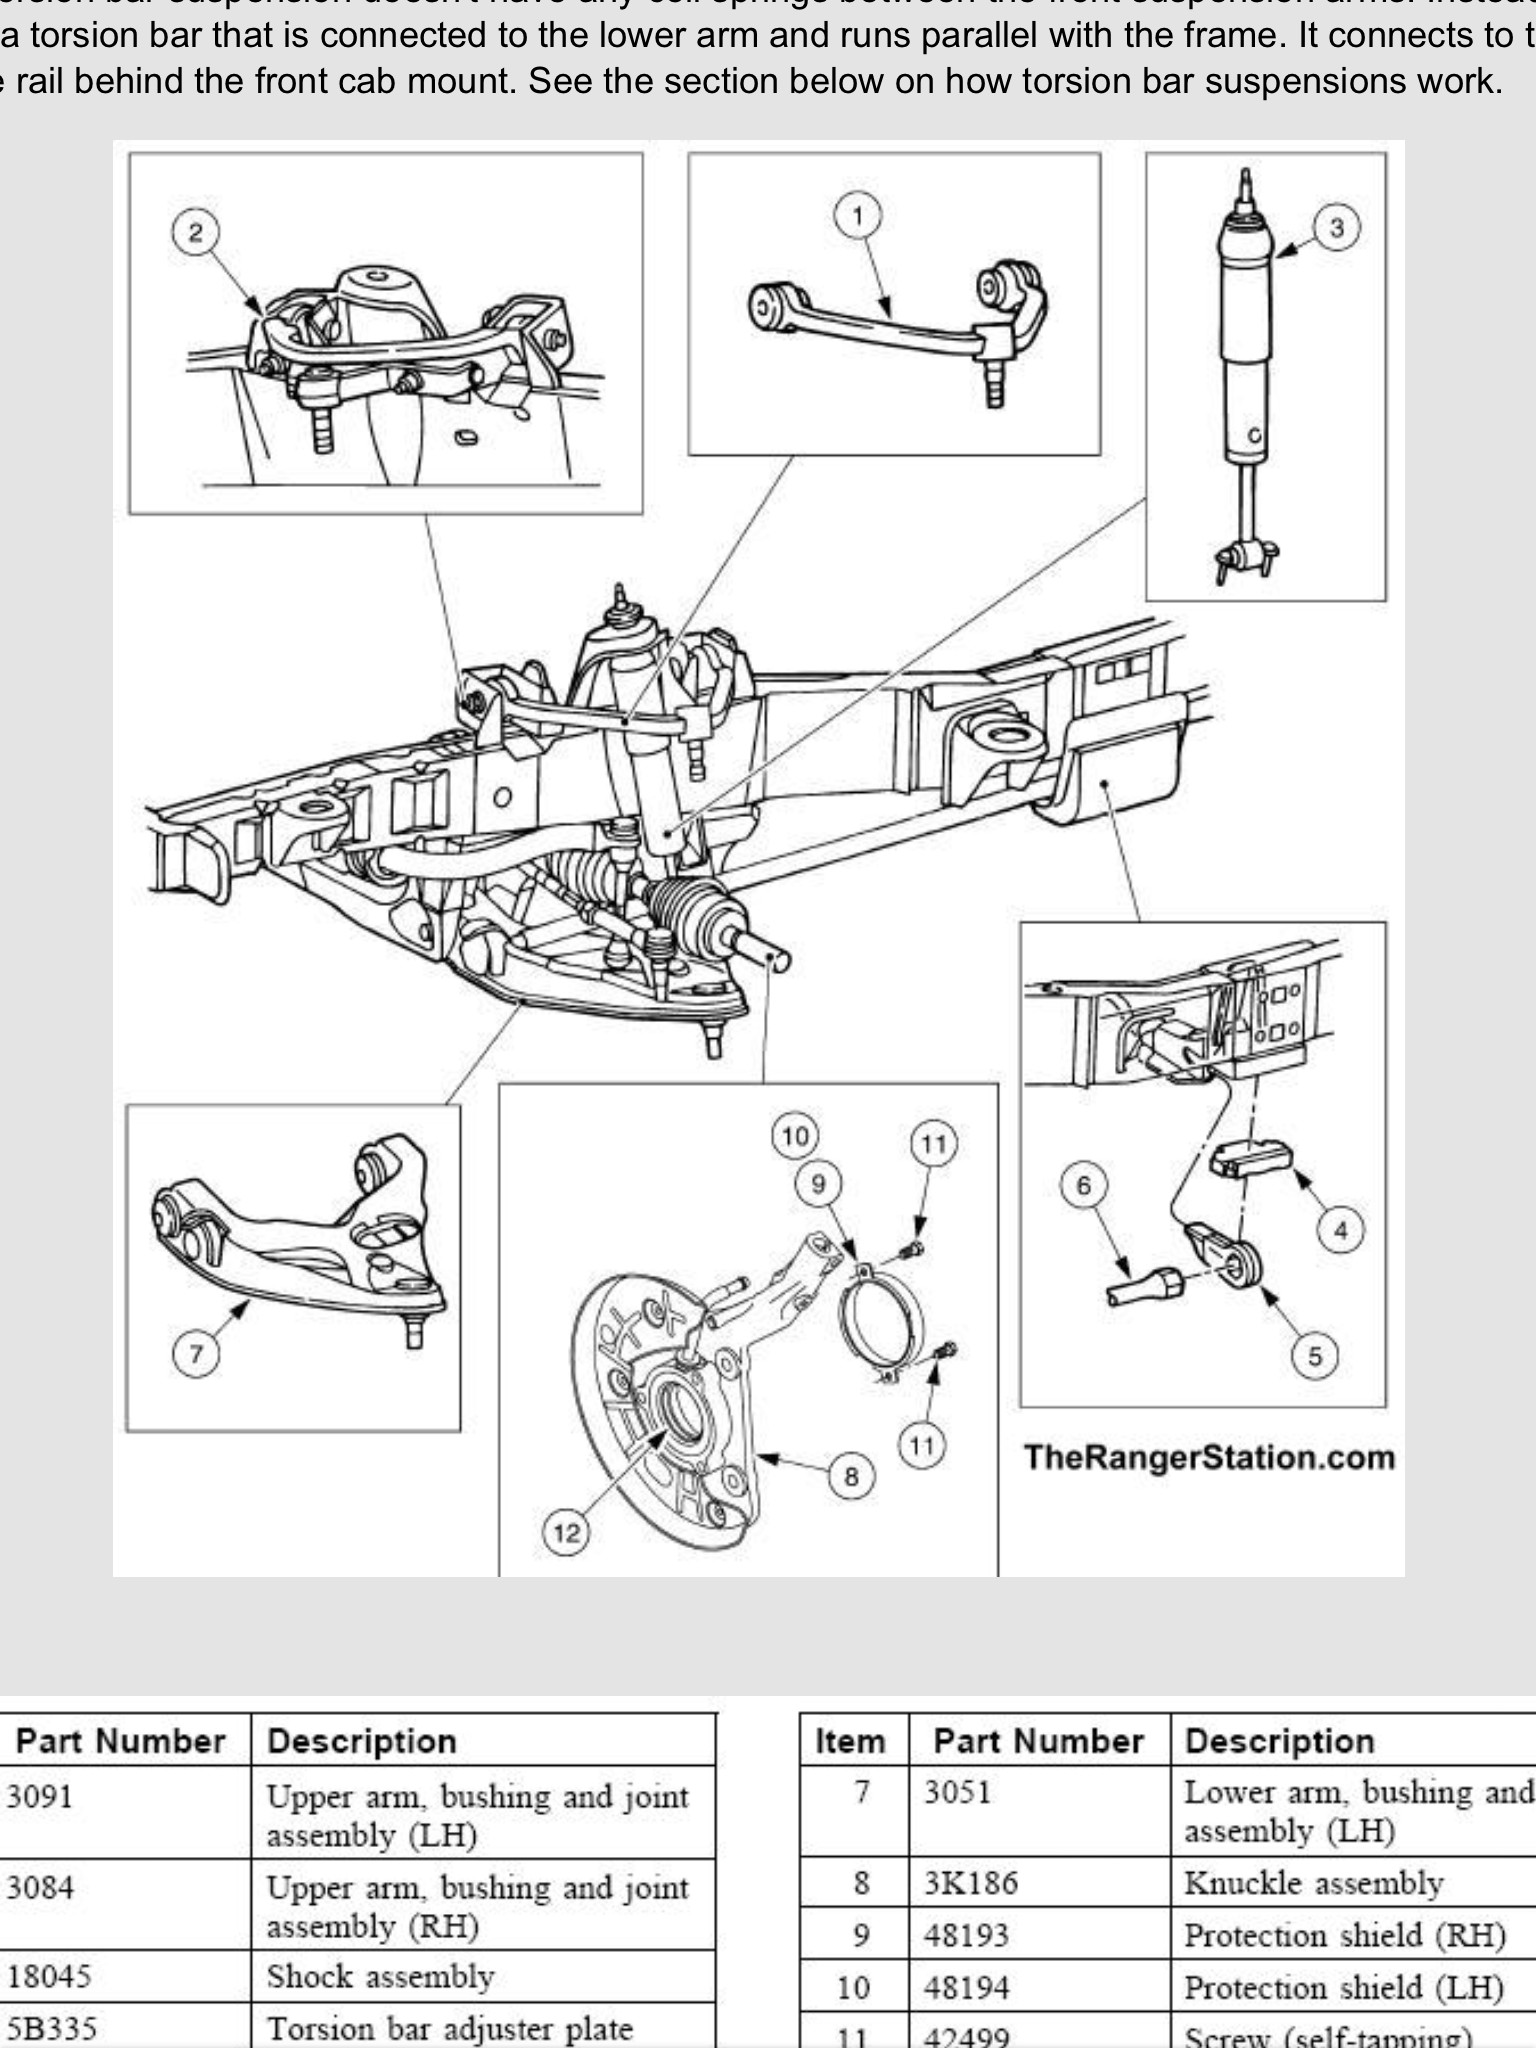 Car Fuel Tank Diagram Pin by Tedja Alvin On Serba Serbi Mesin Of Car Fuel Tank Diagram